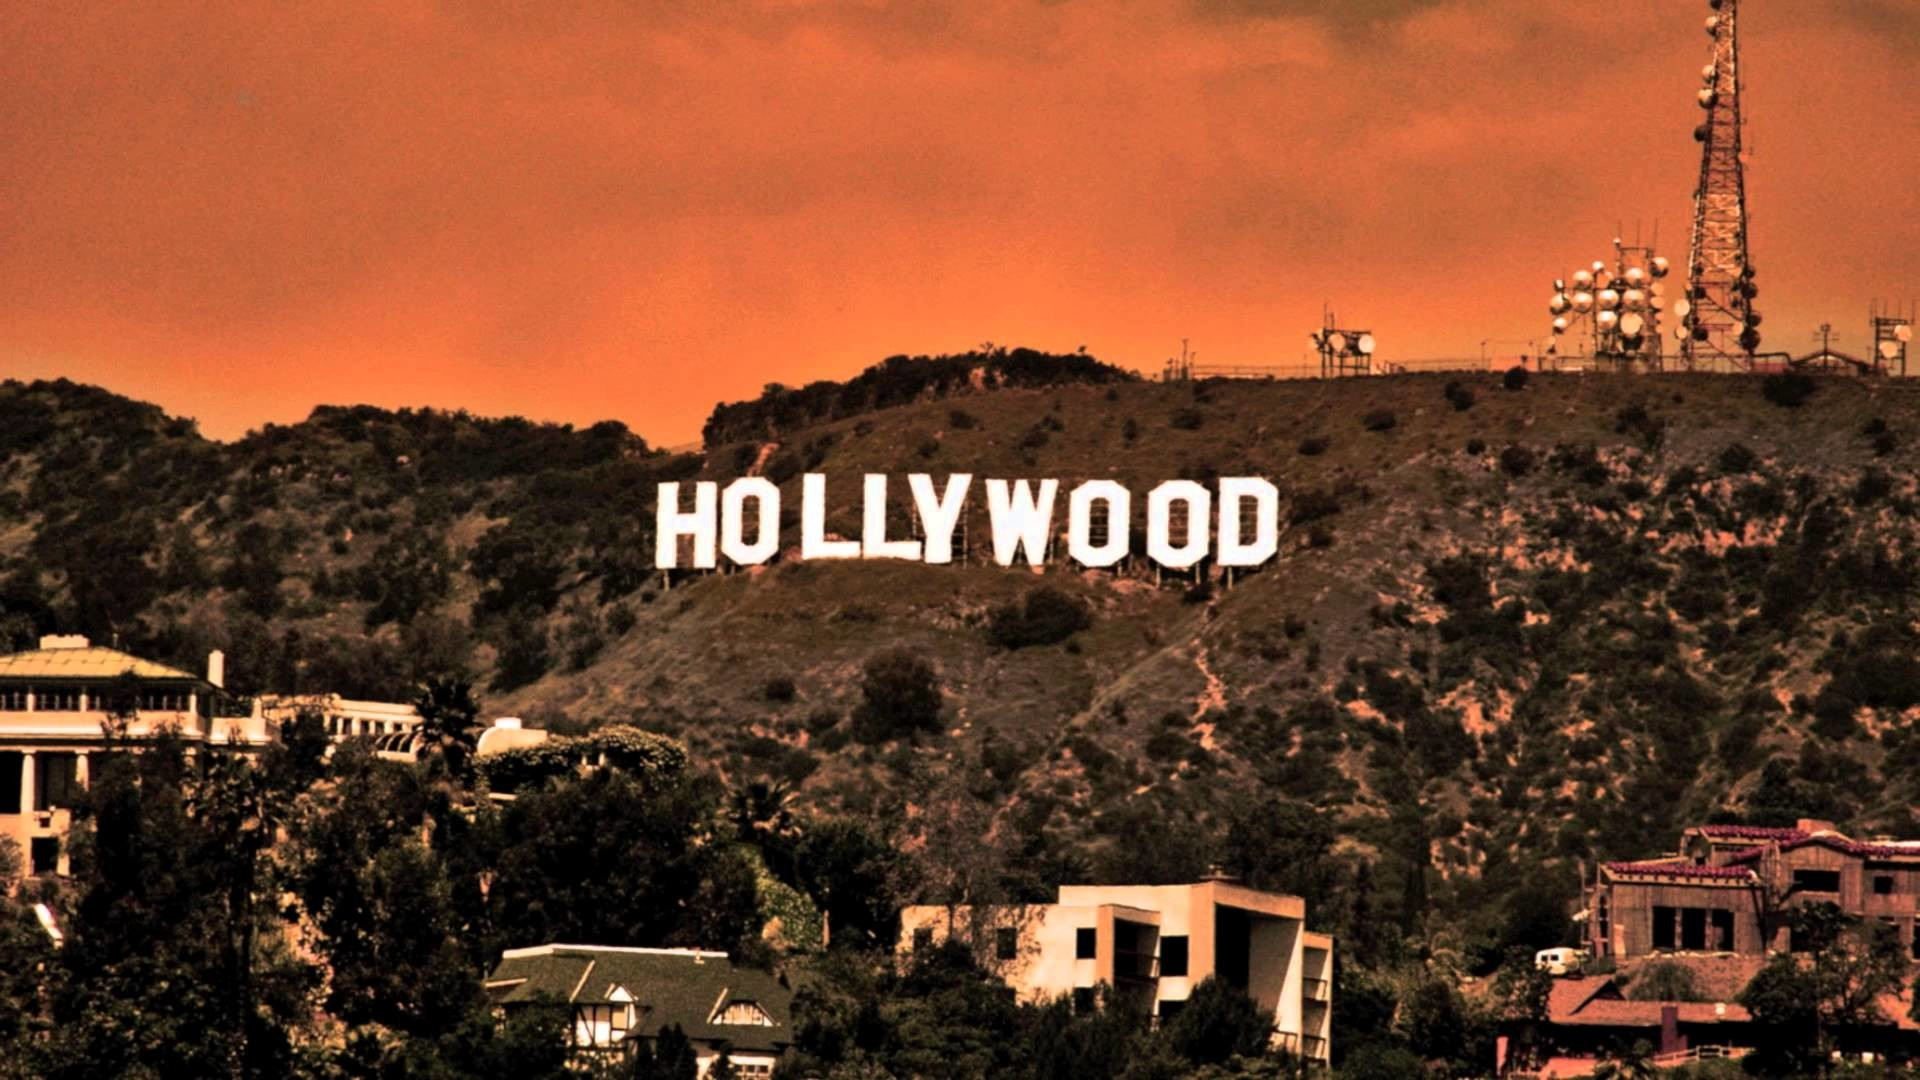 1920x1080 Images For Hollywood Sign Backgrounds